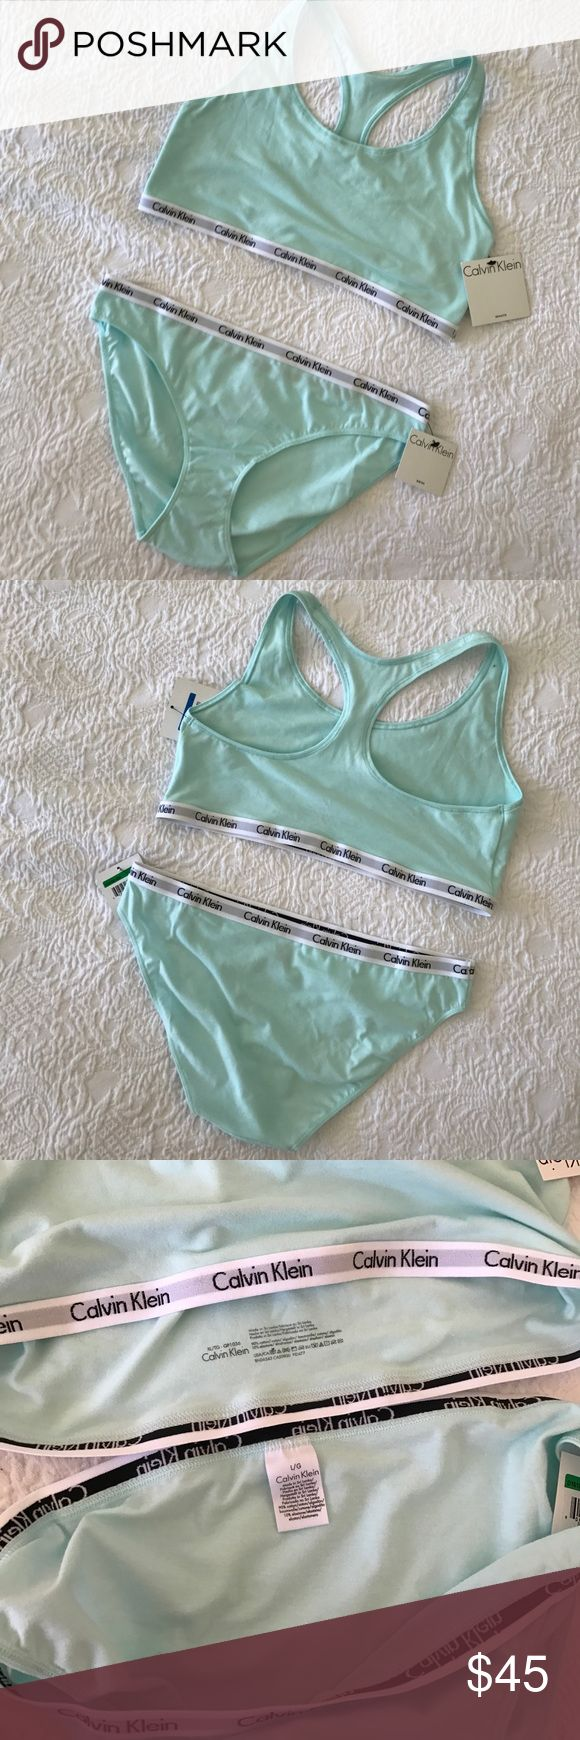 Calvin Klein new bra underwear set mint bikini This adorable cotton underwear set is brand new with tags! Beautiful mint green/blue color. Size XL top Size L bottoms. I like to get one size up in CK Bra and down in bottoms. However I'm also willing to sell separately :) Calvin Klein Intimates & Sleepwear Bras